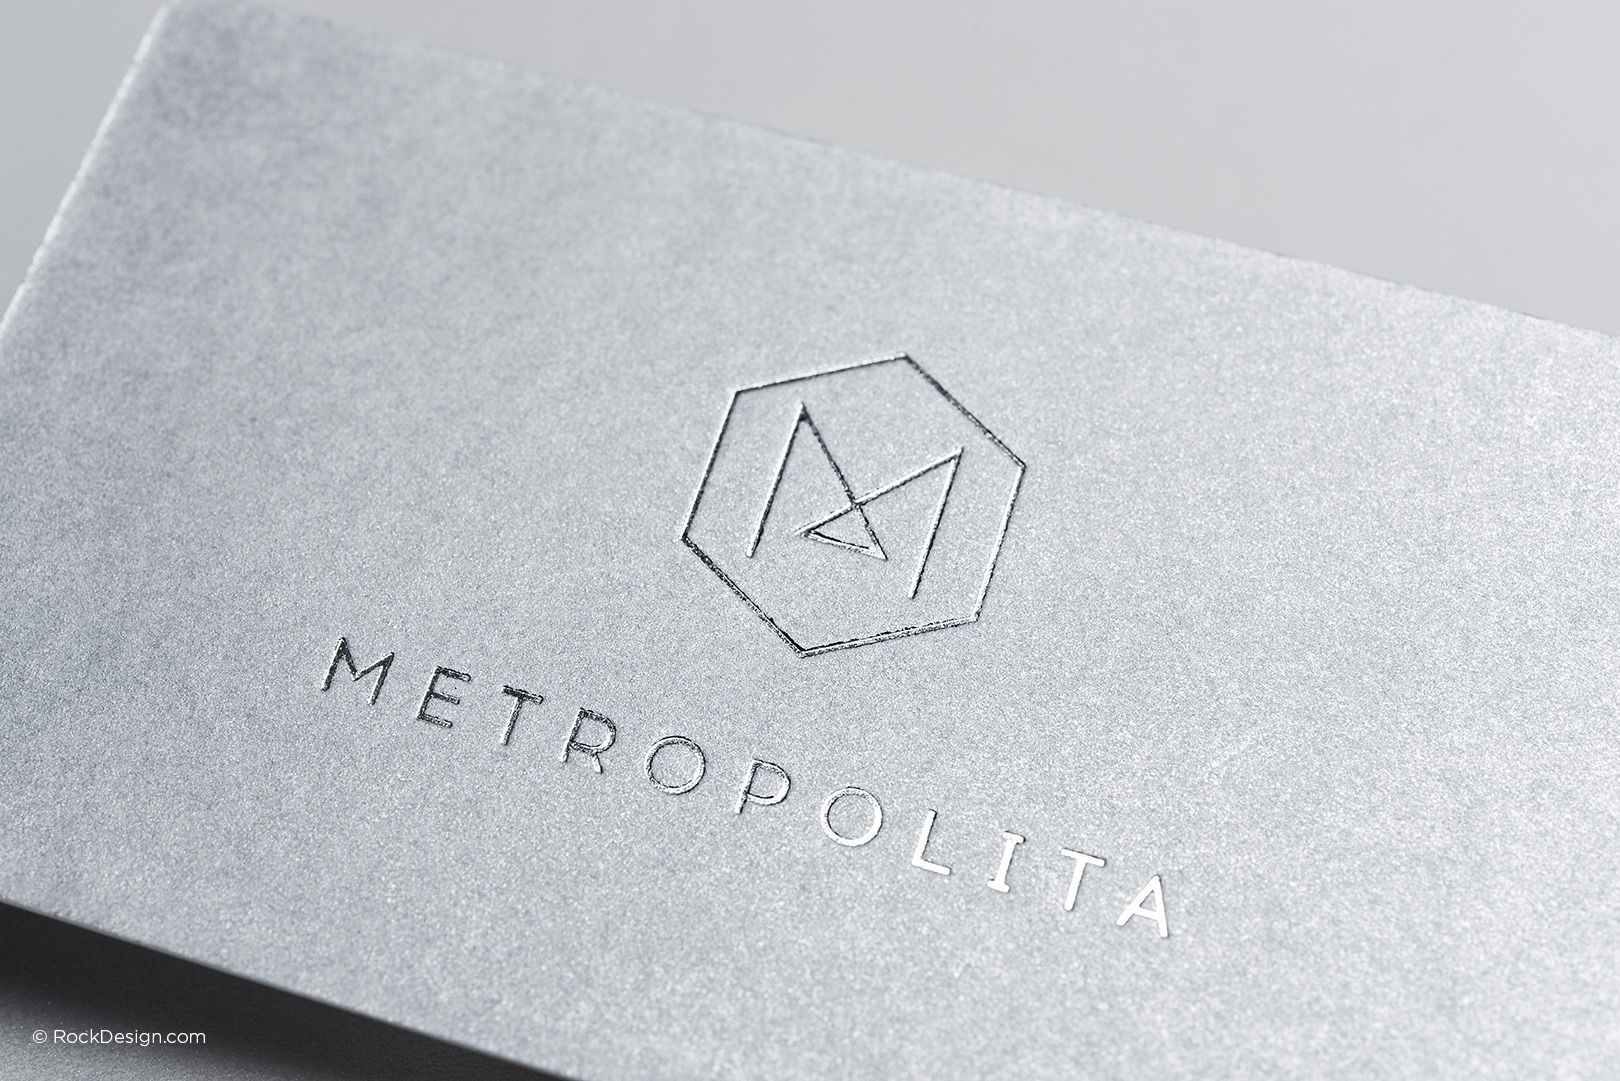 Modern professional monogram metallic silver business card use our free luxury templates to create your visit cards today buy silver realtor business cards online today to expand your business reheart Gallery